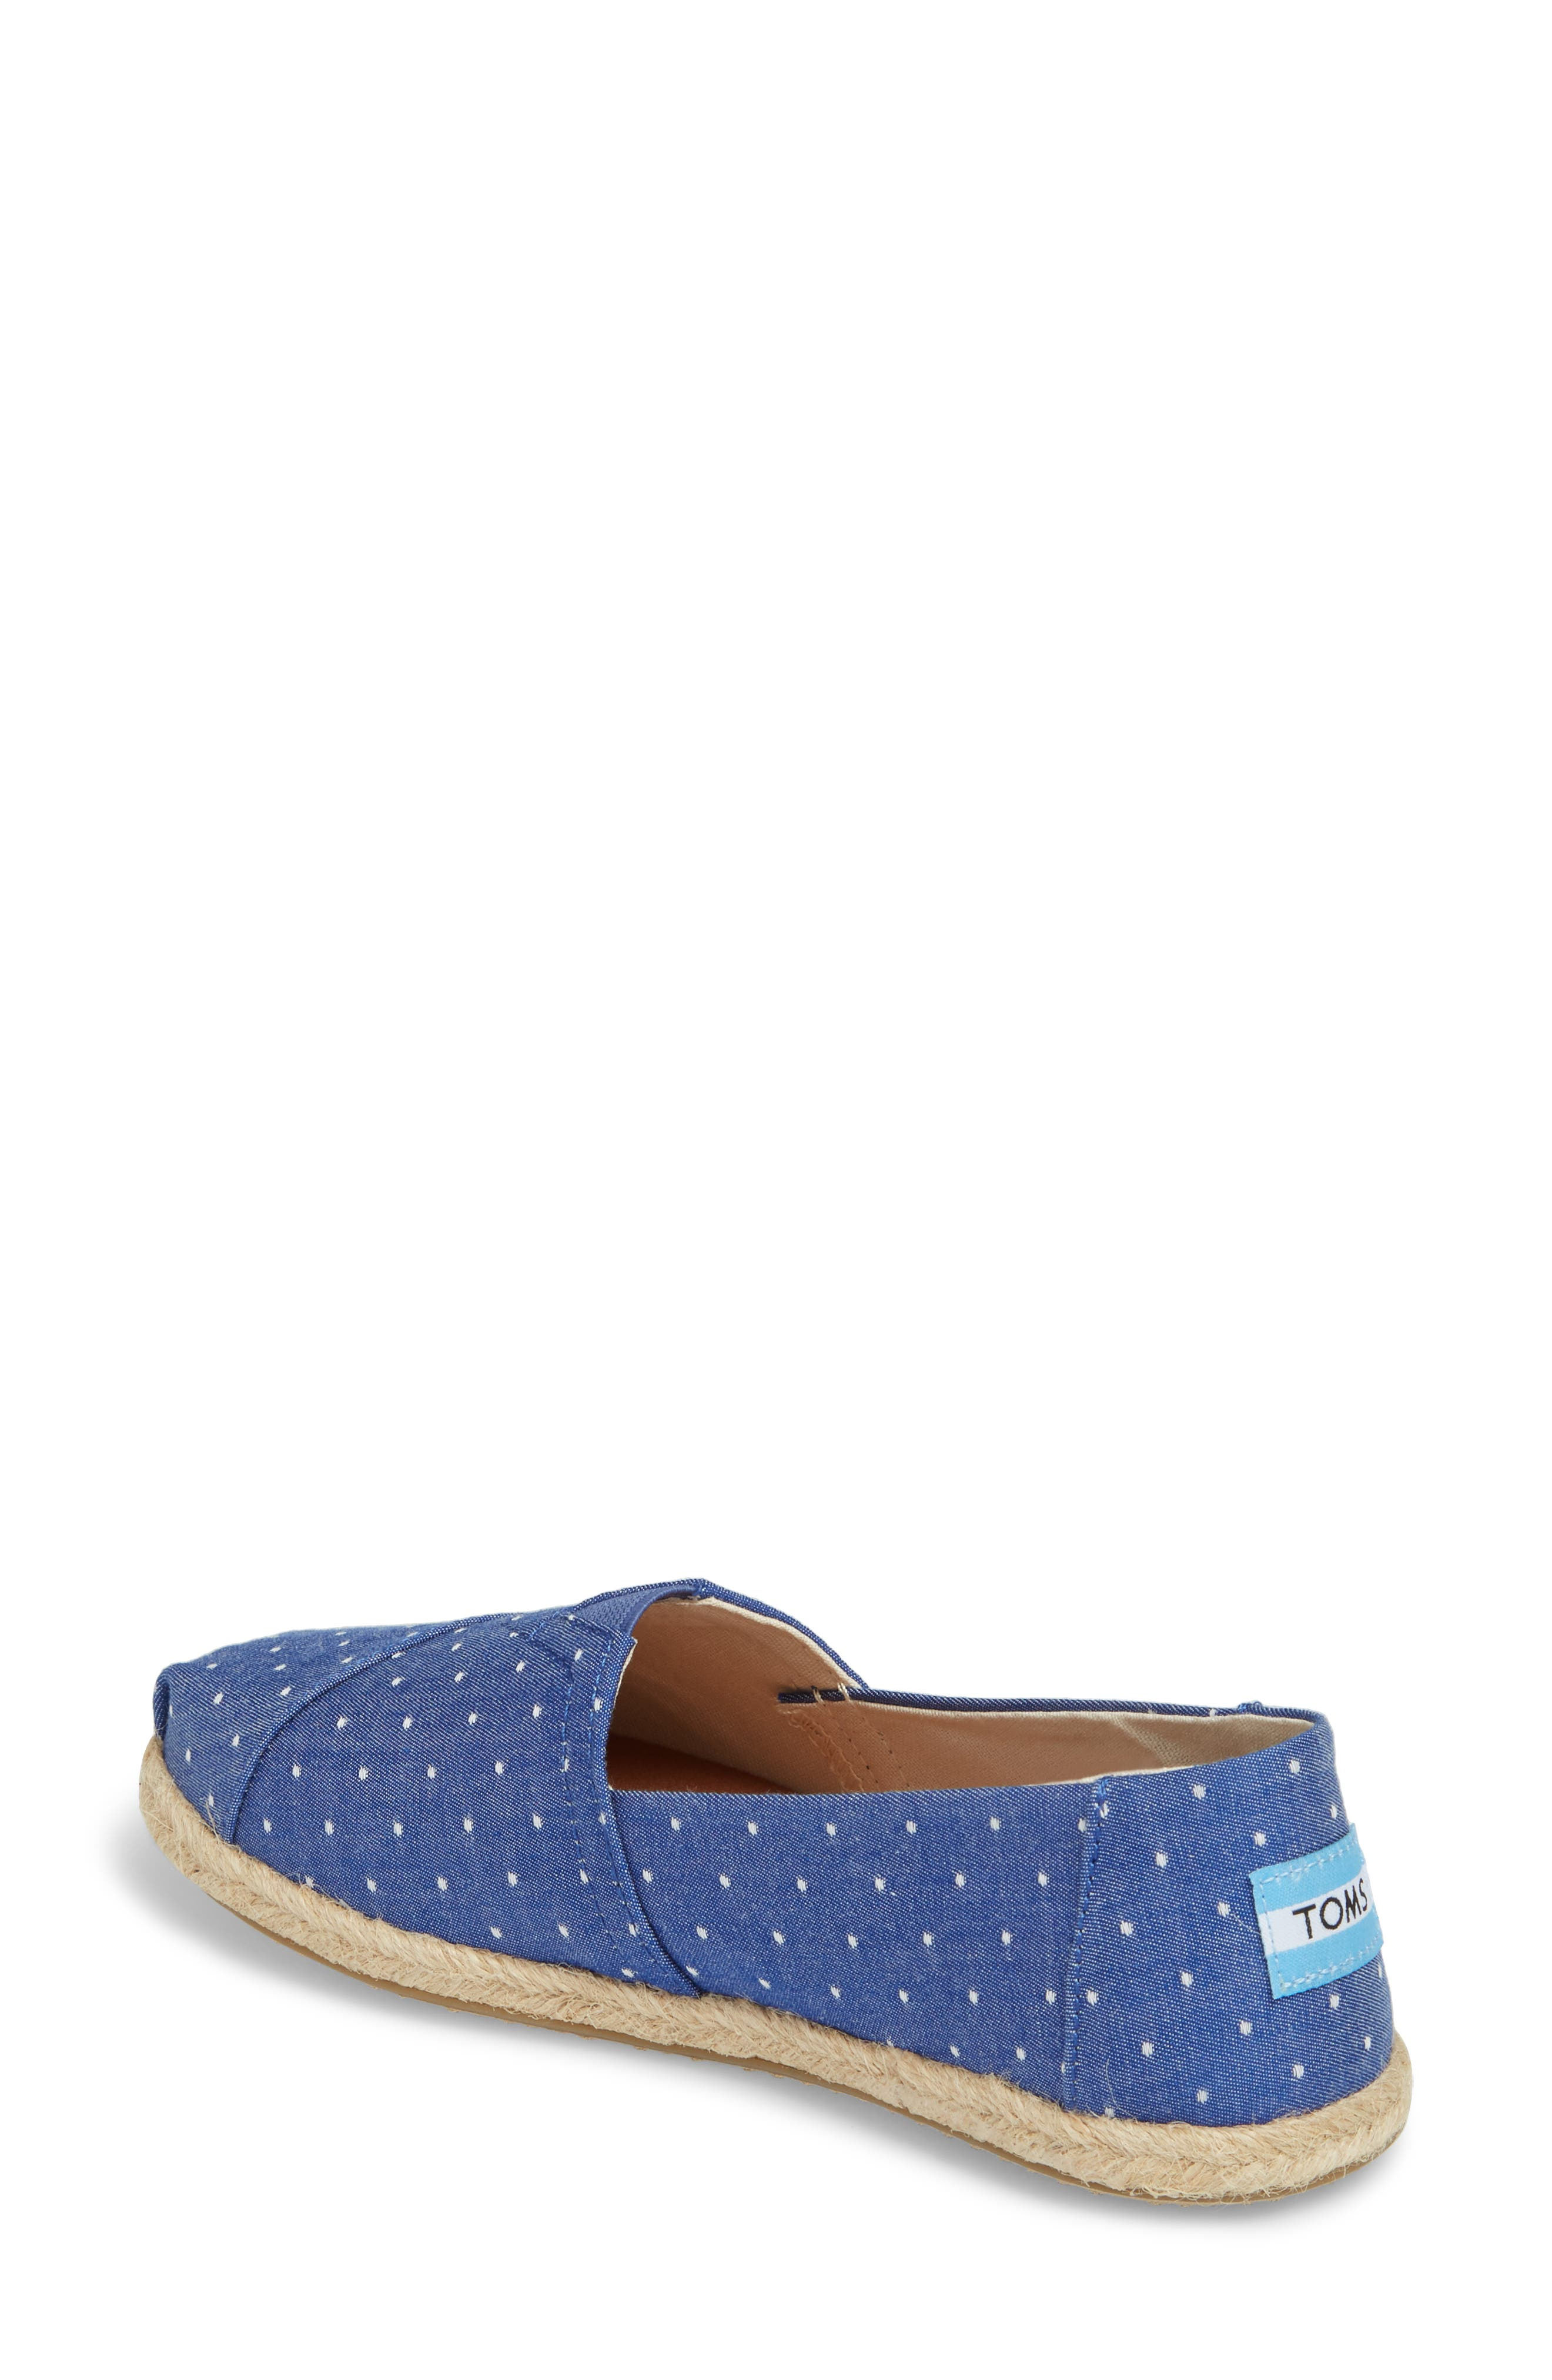 Deconstructed Alpargata Slip-On,                             Alternate thumbnail 2, color,                             Blue Dot Fabric